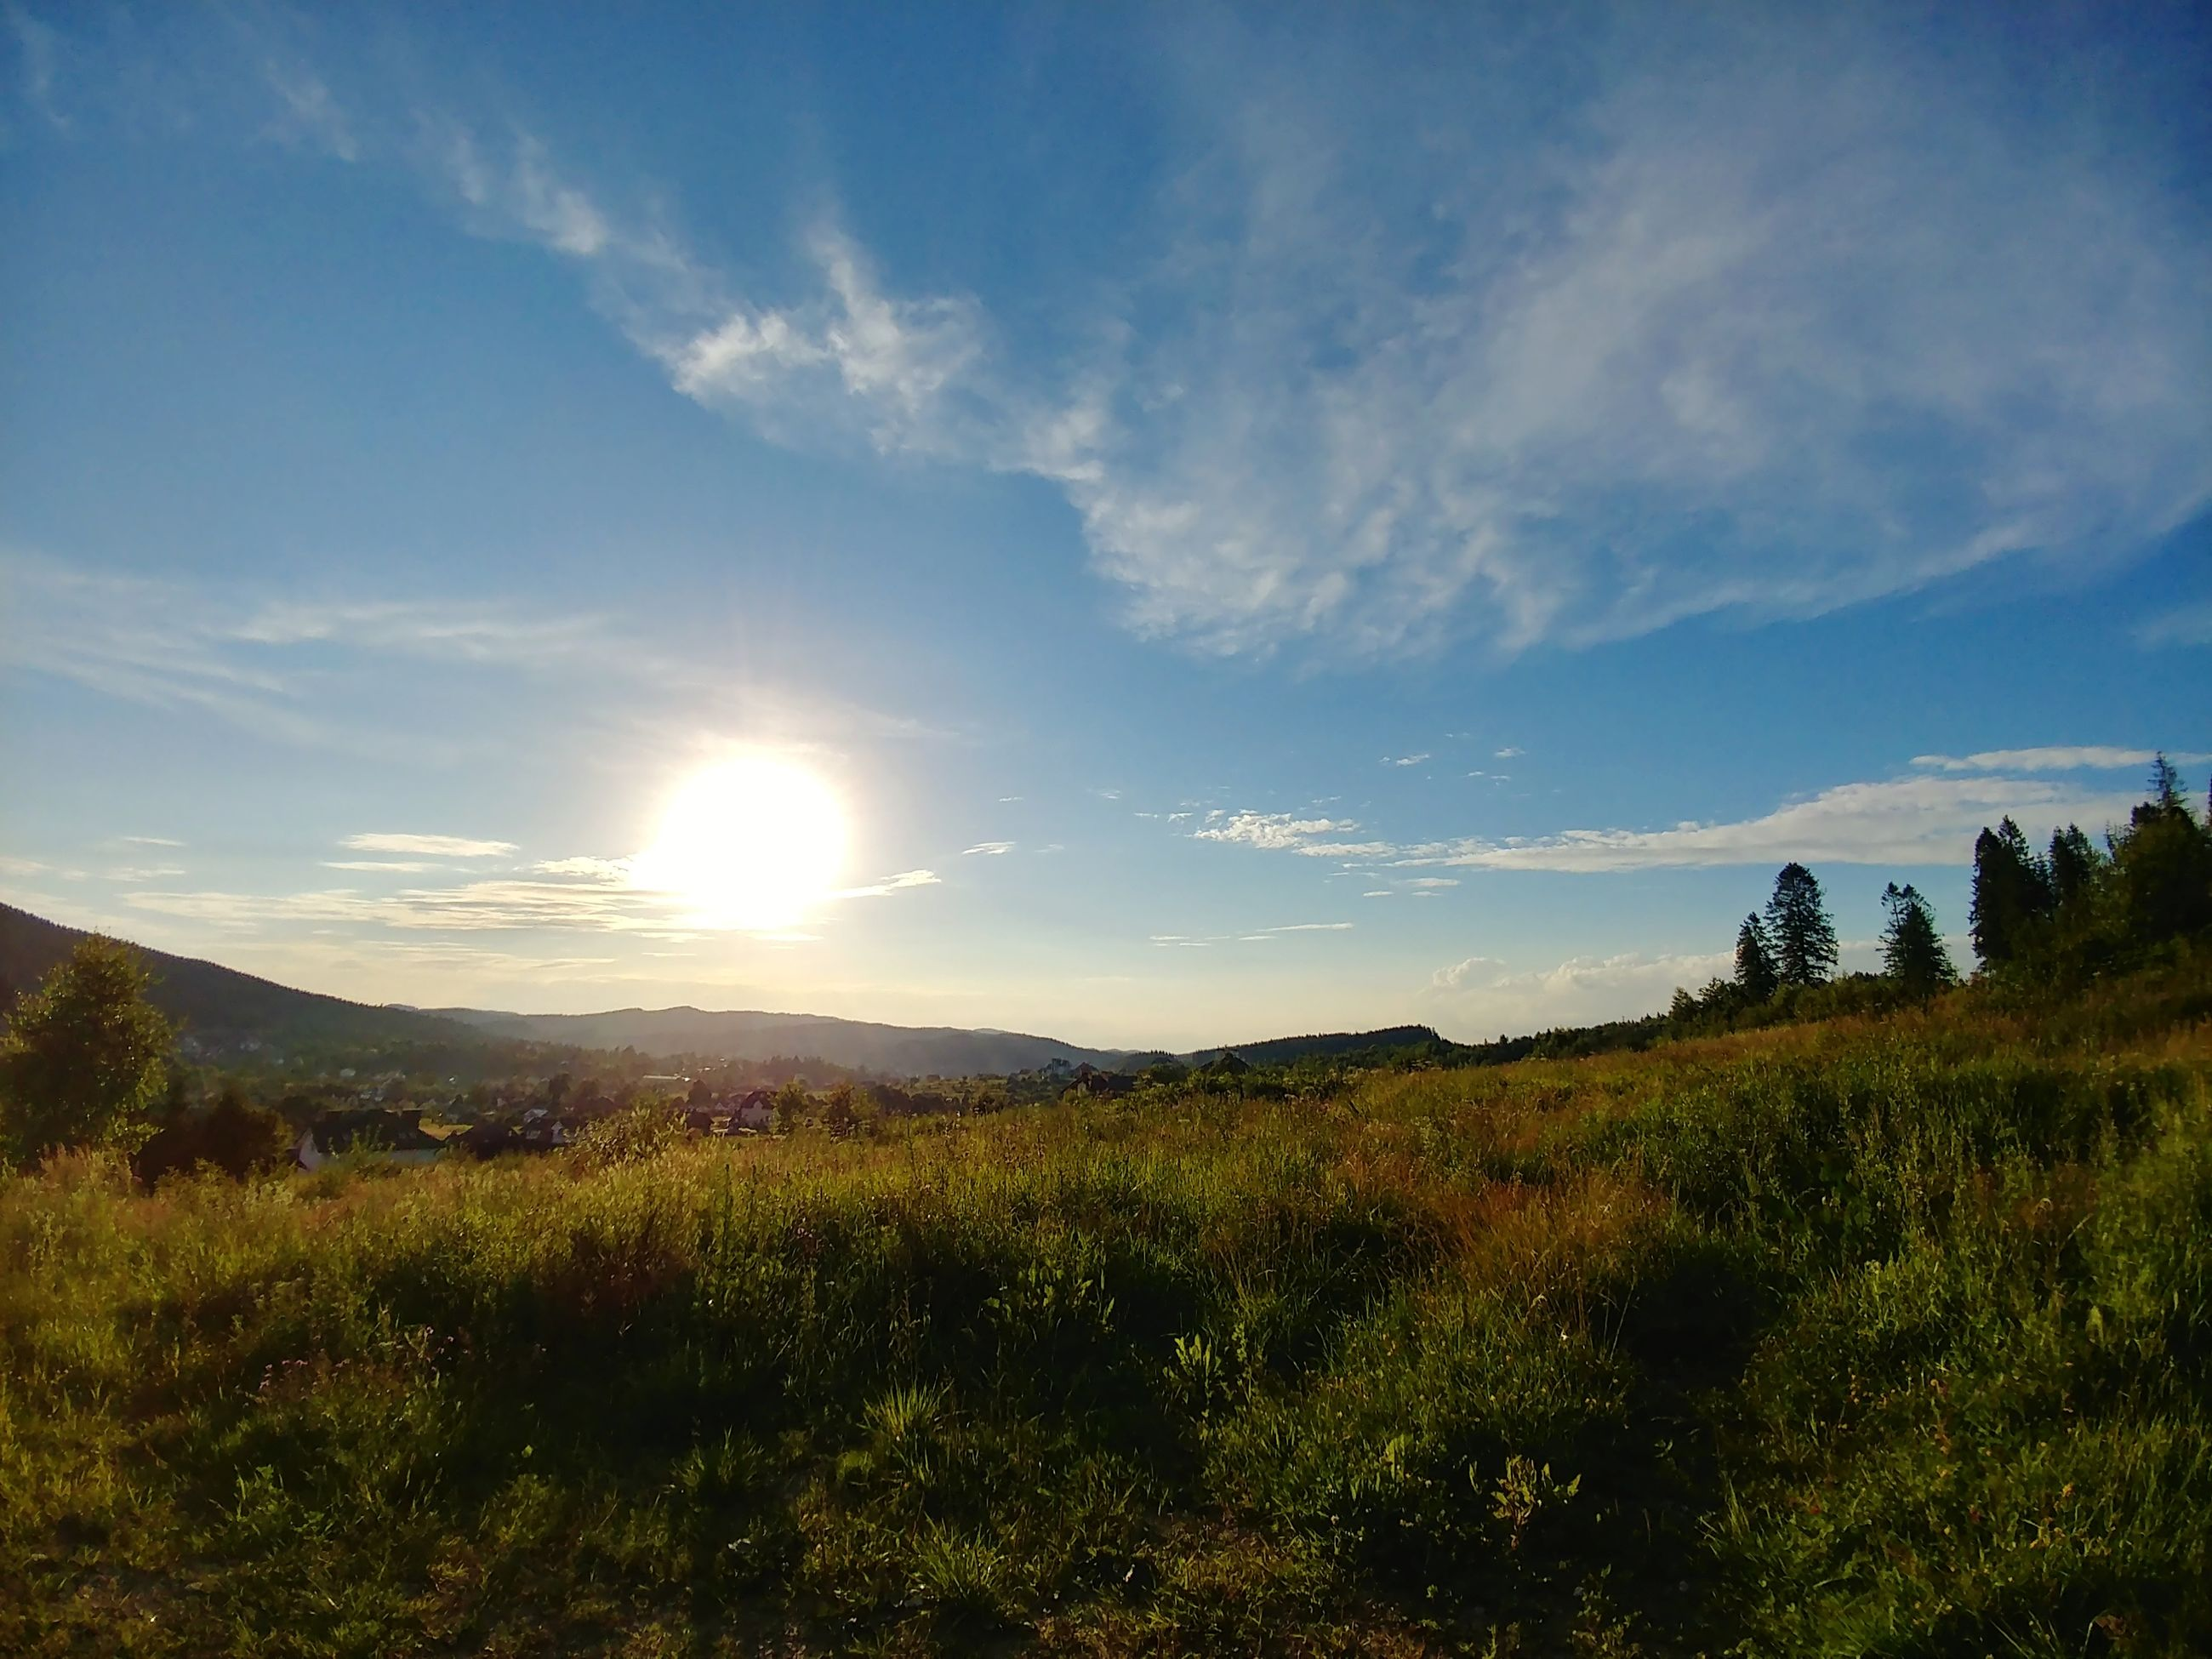 sky, tranquil scene, beauty in nature, tranquility, scenics - nature, cloud - sky, plant, nature, sunlight, environment, land, landscape, grass, non-urban scene, field, no people, day, growth, tree, outdoors, sun, lens flare, bright